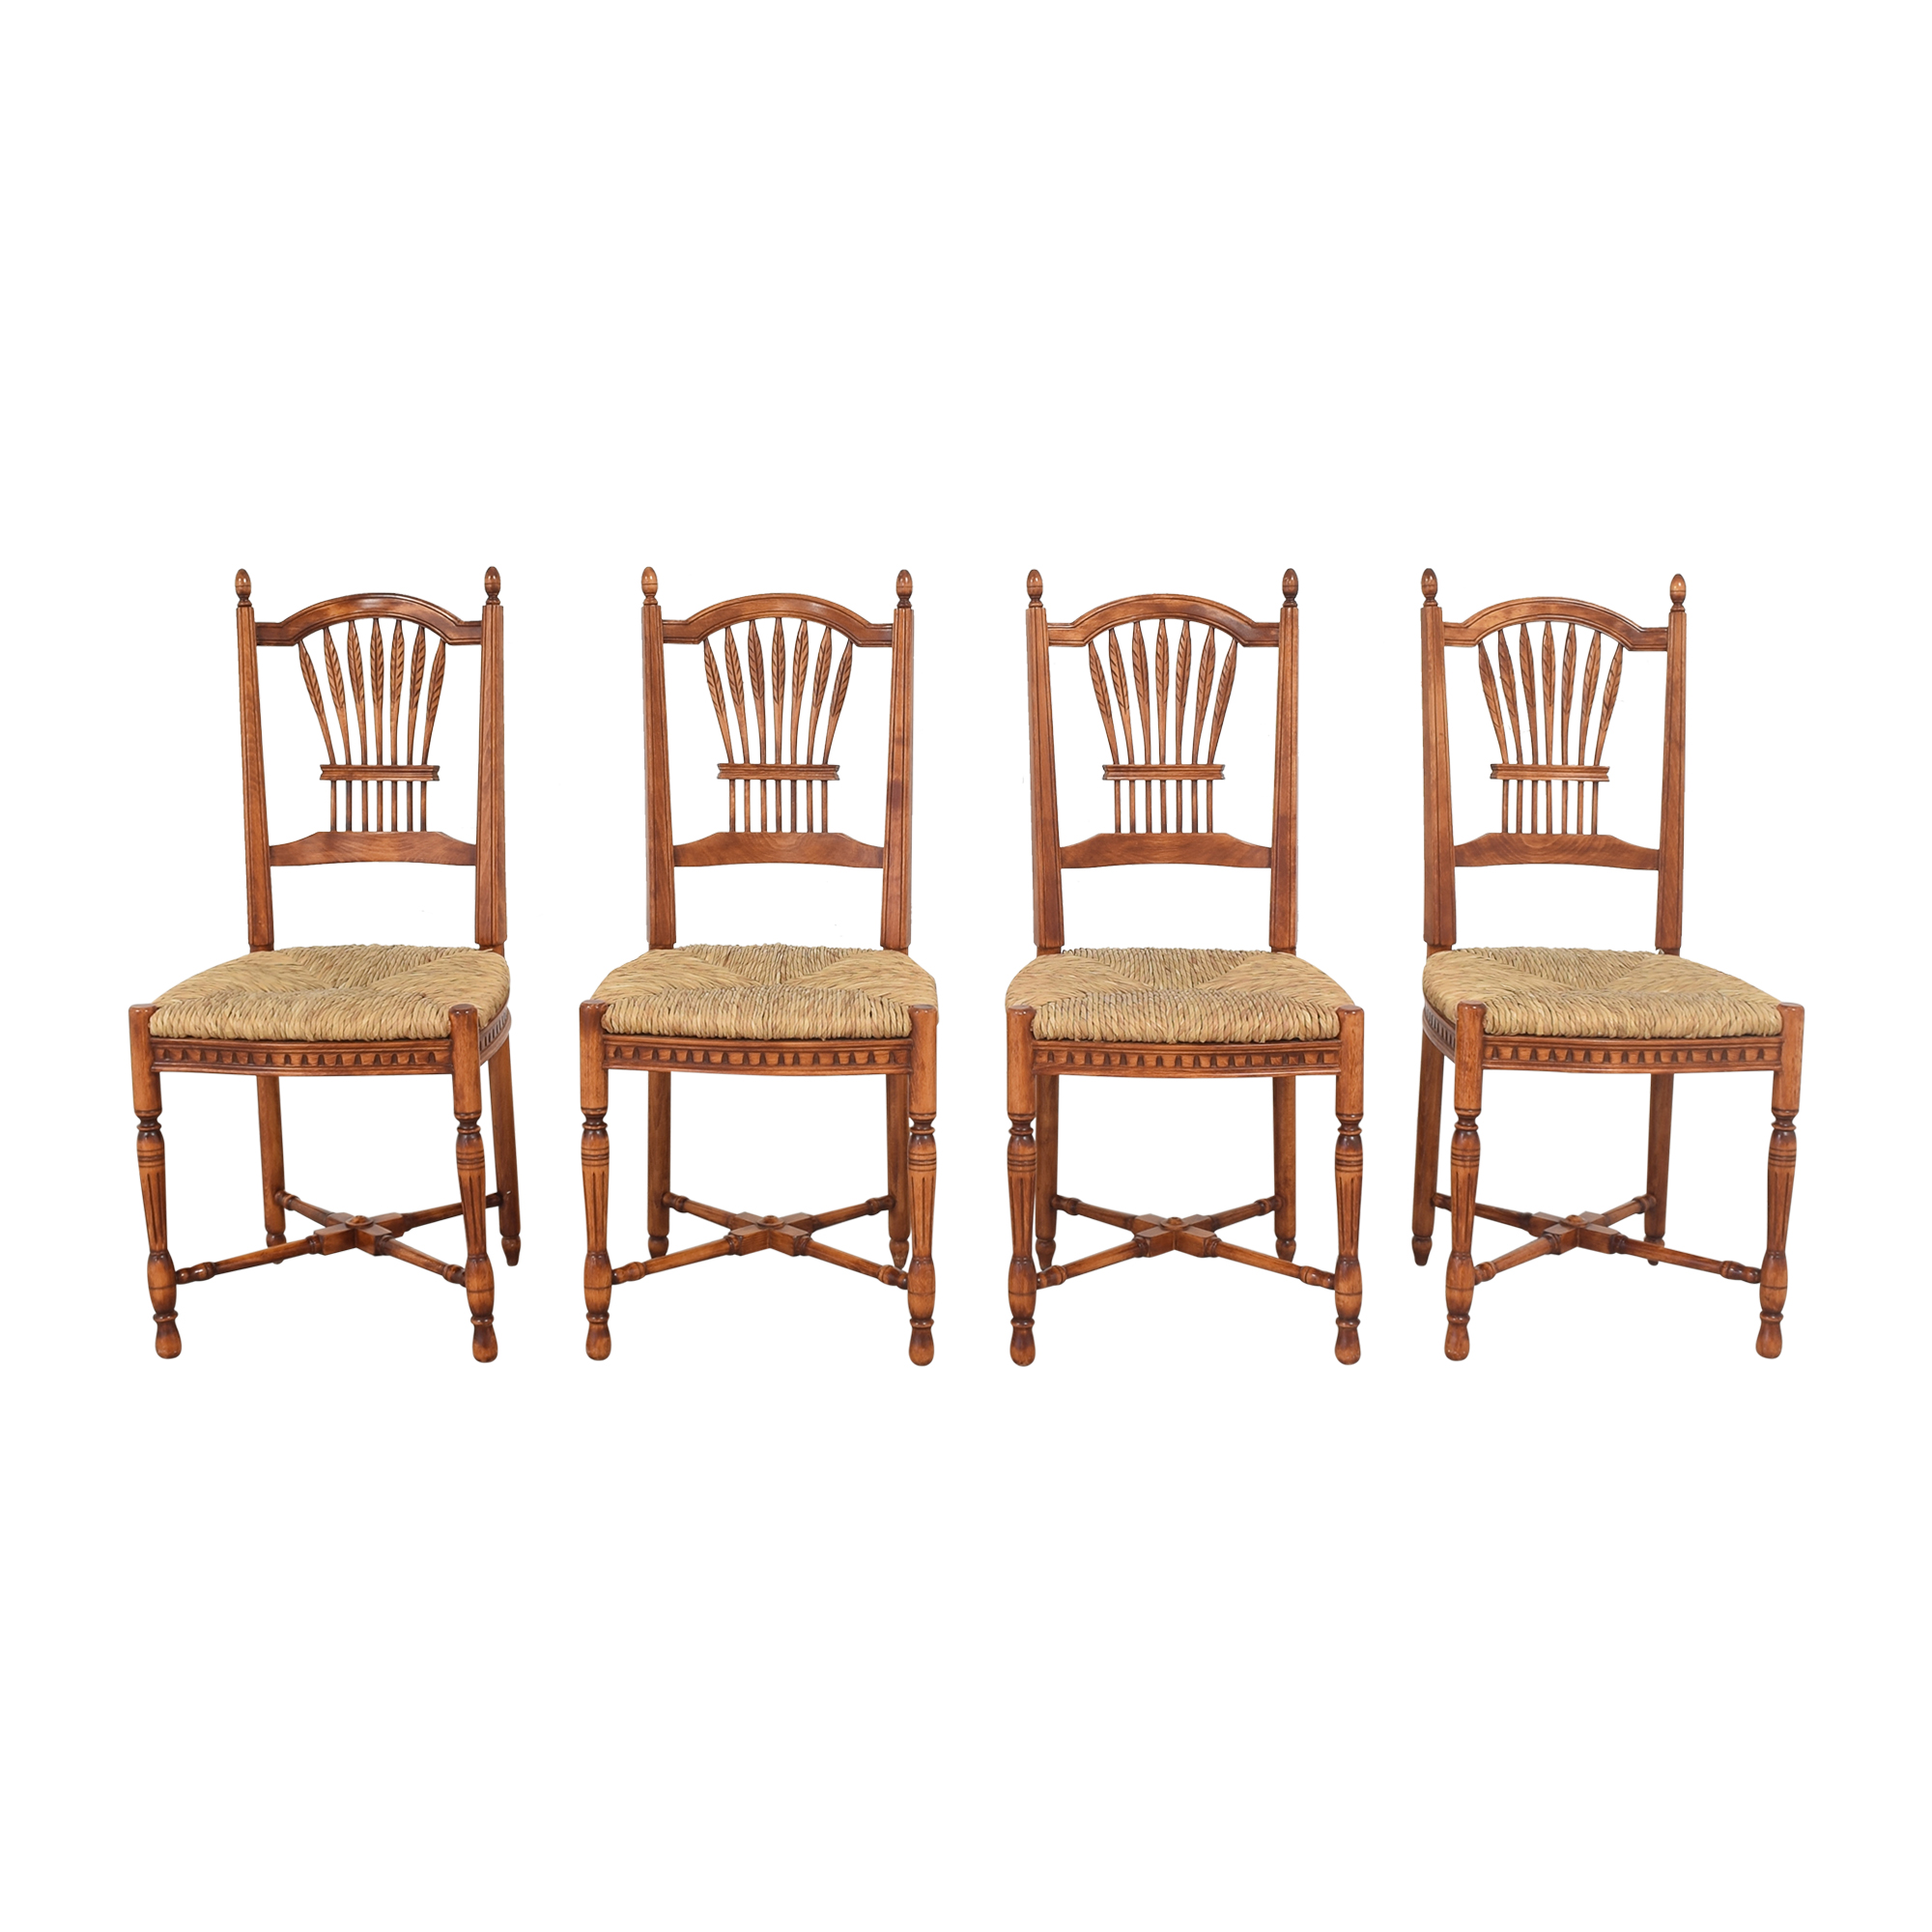 Grange Grange French Country Wheat Back Dining Side Chairs on sale